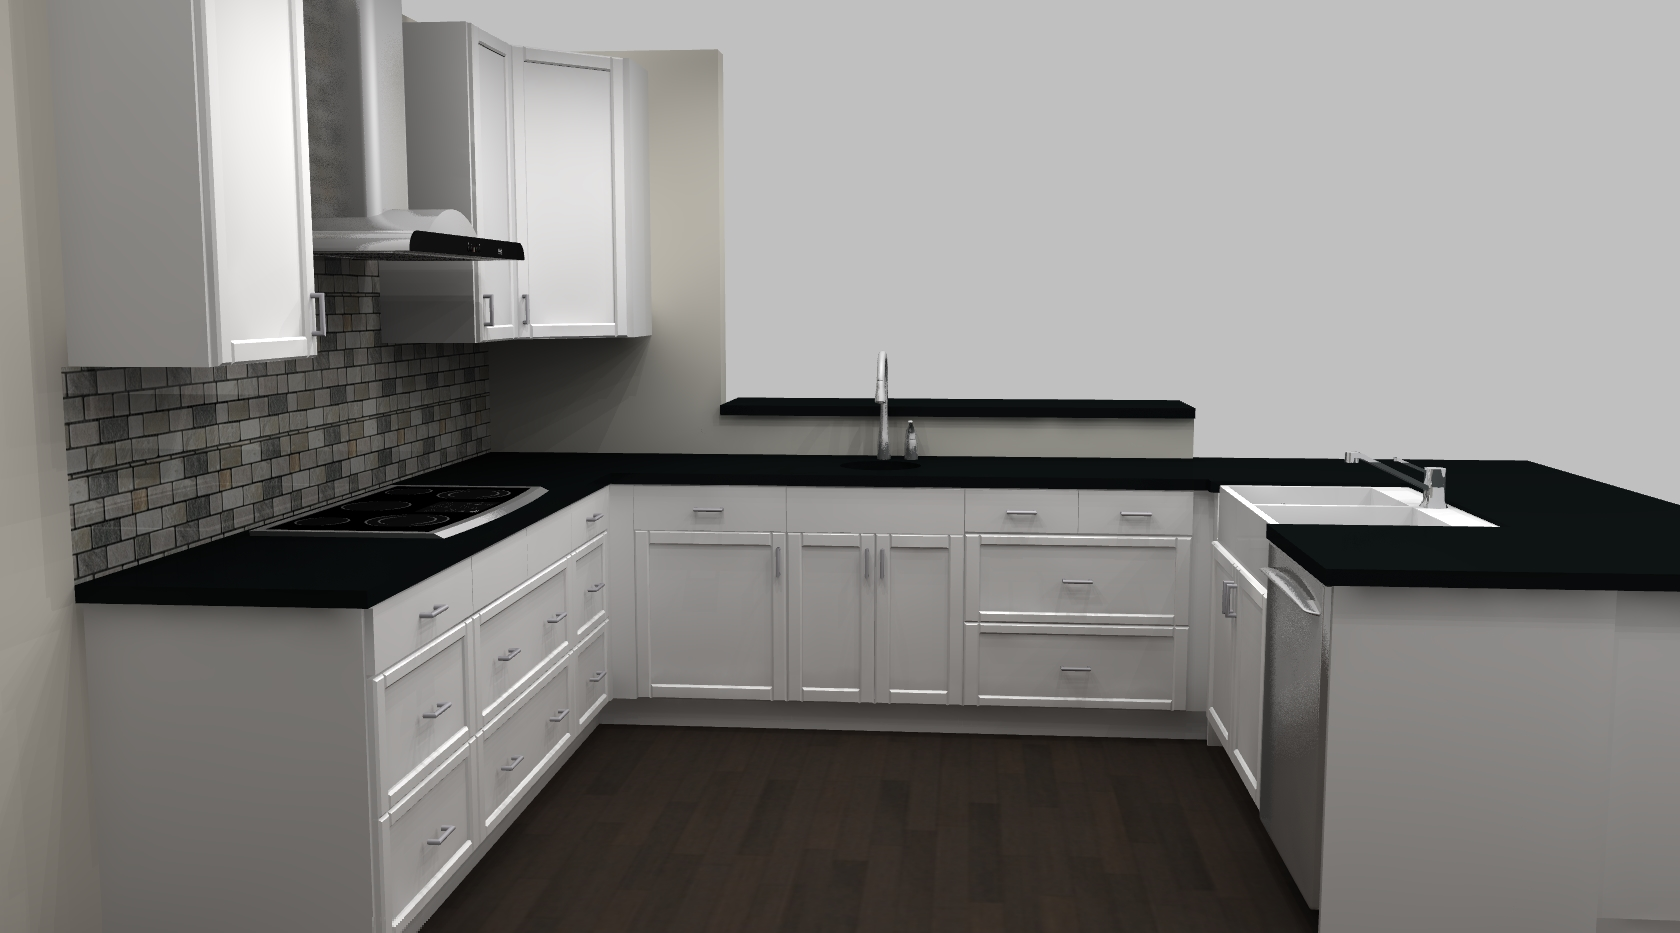 Like A Mullet, This 80's Kitchen Had Gone Out of Style